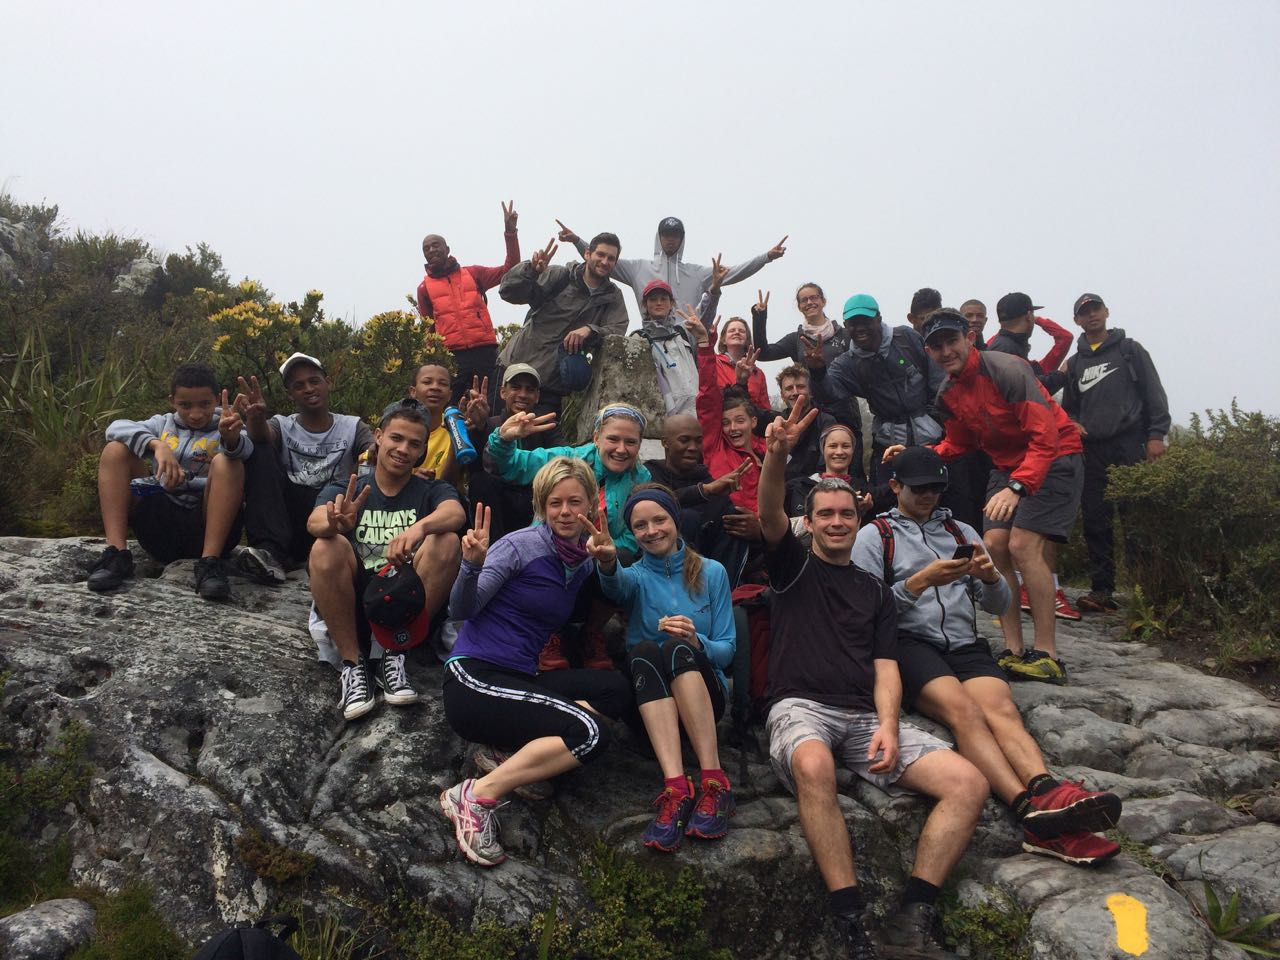 3 Peaks Team after climbing Table Mountain